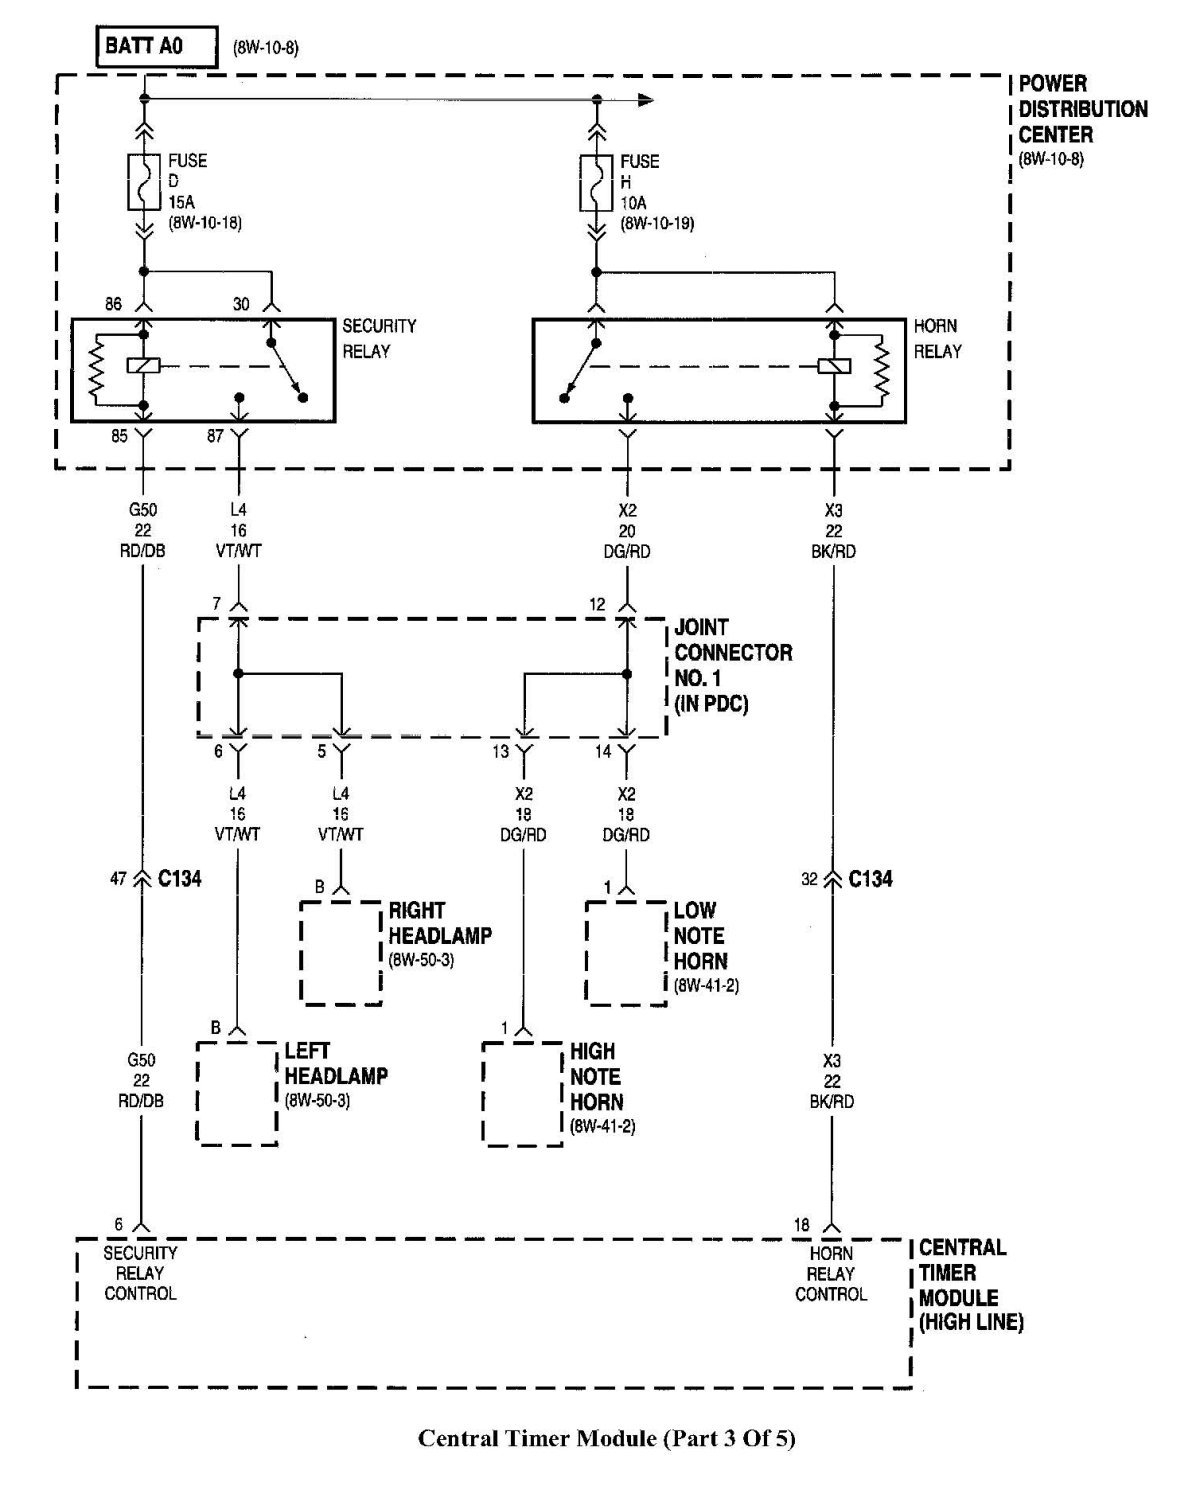 Headlight Wiring Diagram For 2001 Dodge Ram 2500 - All Wiring - 1999 Dodge Ram 2500 Trailer Wiring Diagram